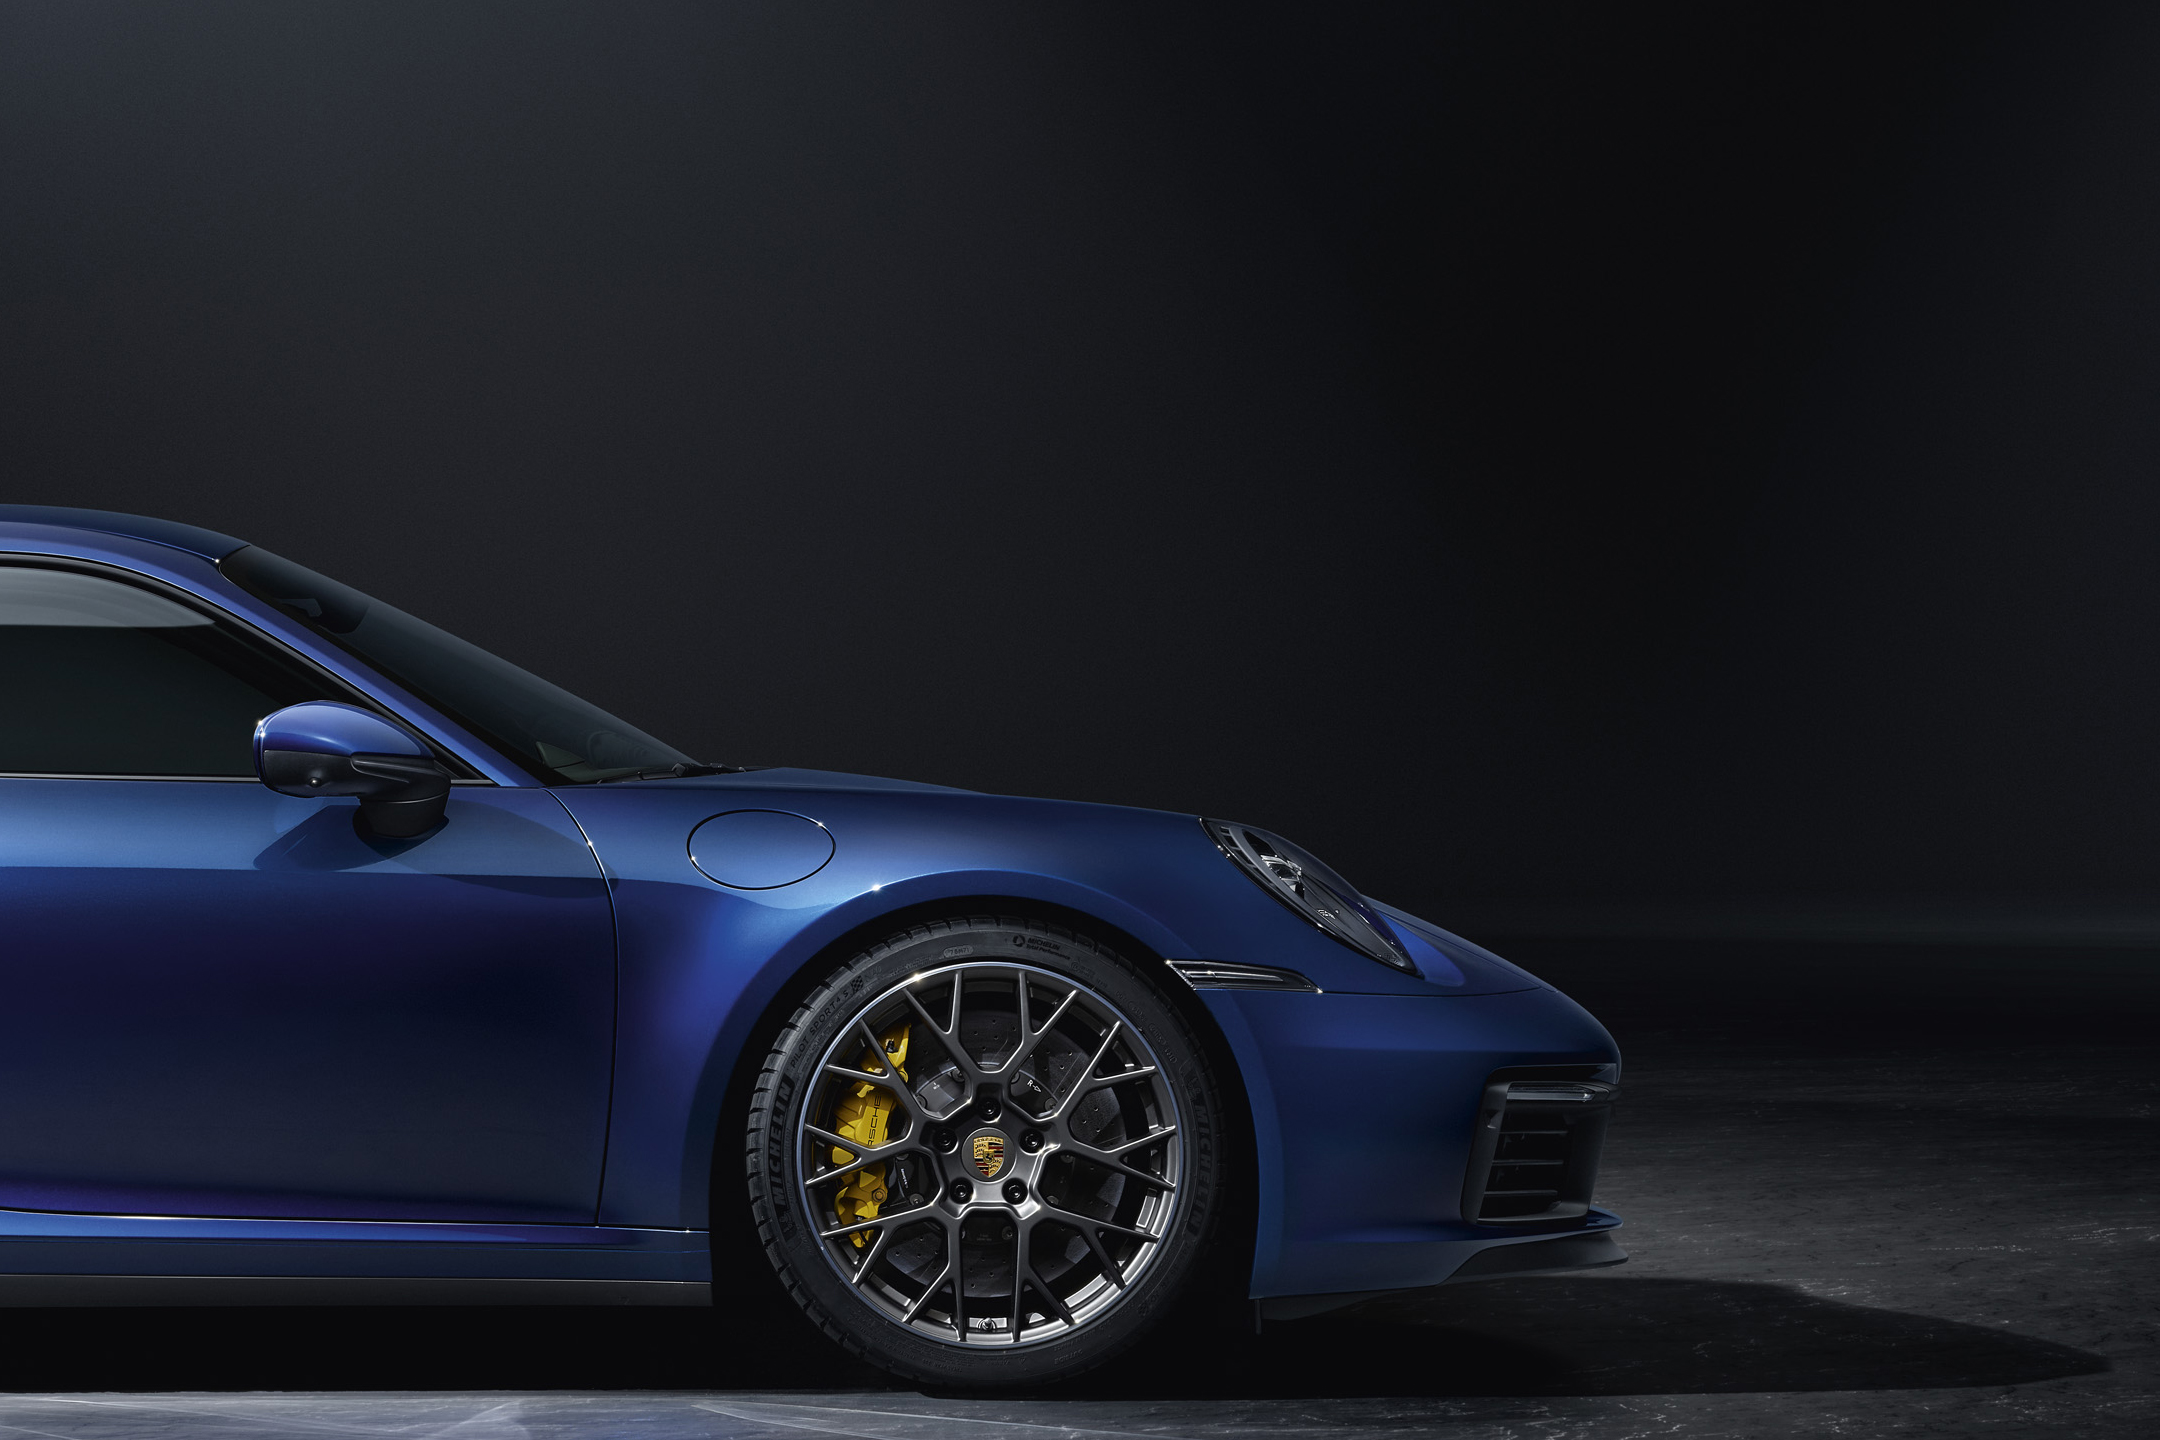 Porsche 911 type 992 Carrera 4S - 2018 - front wheel